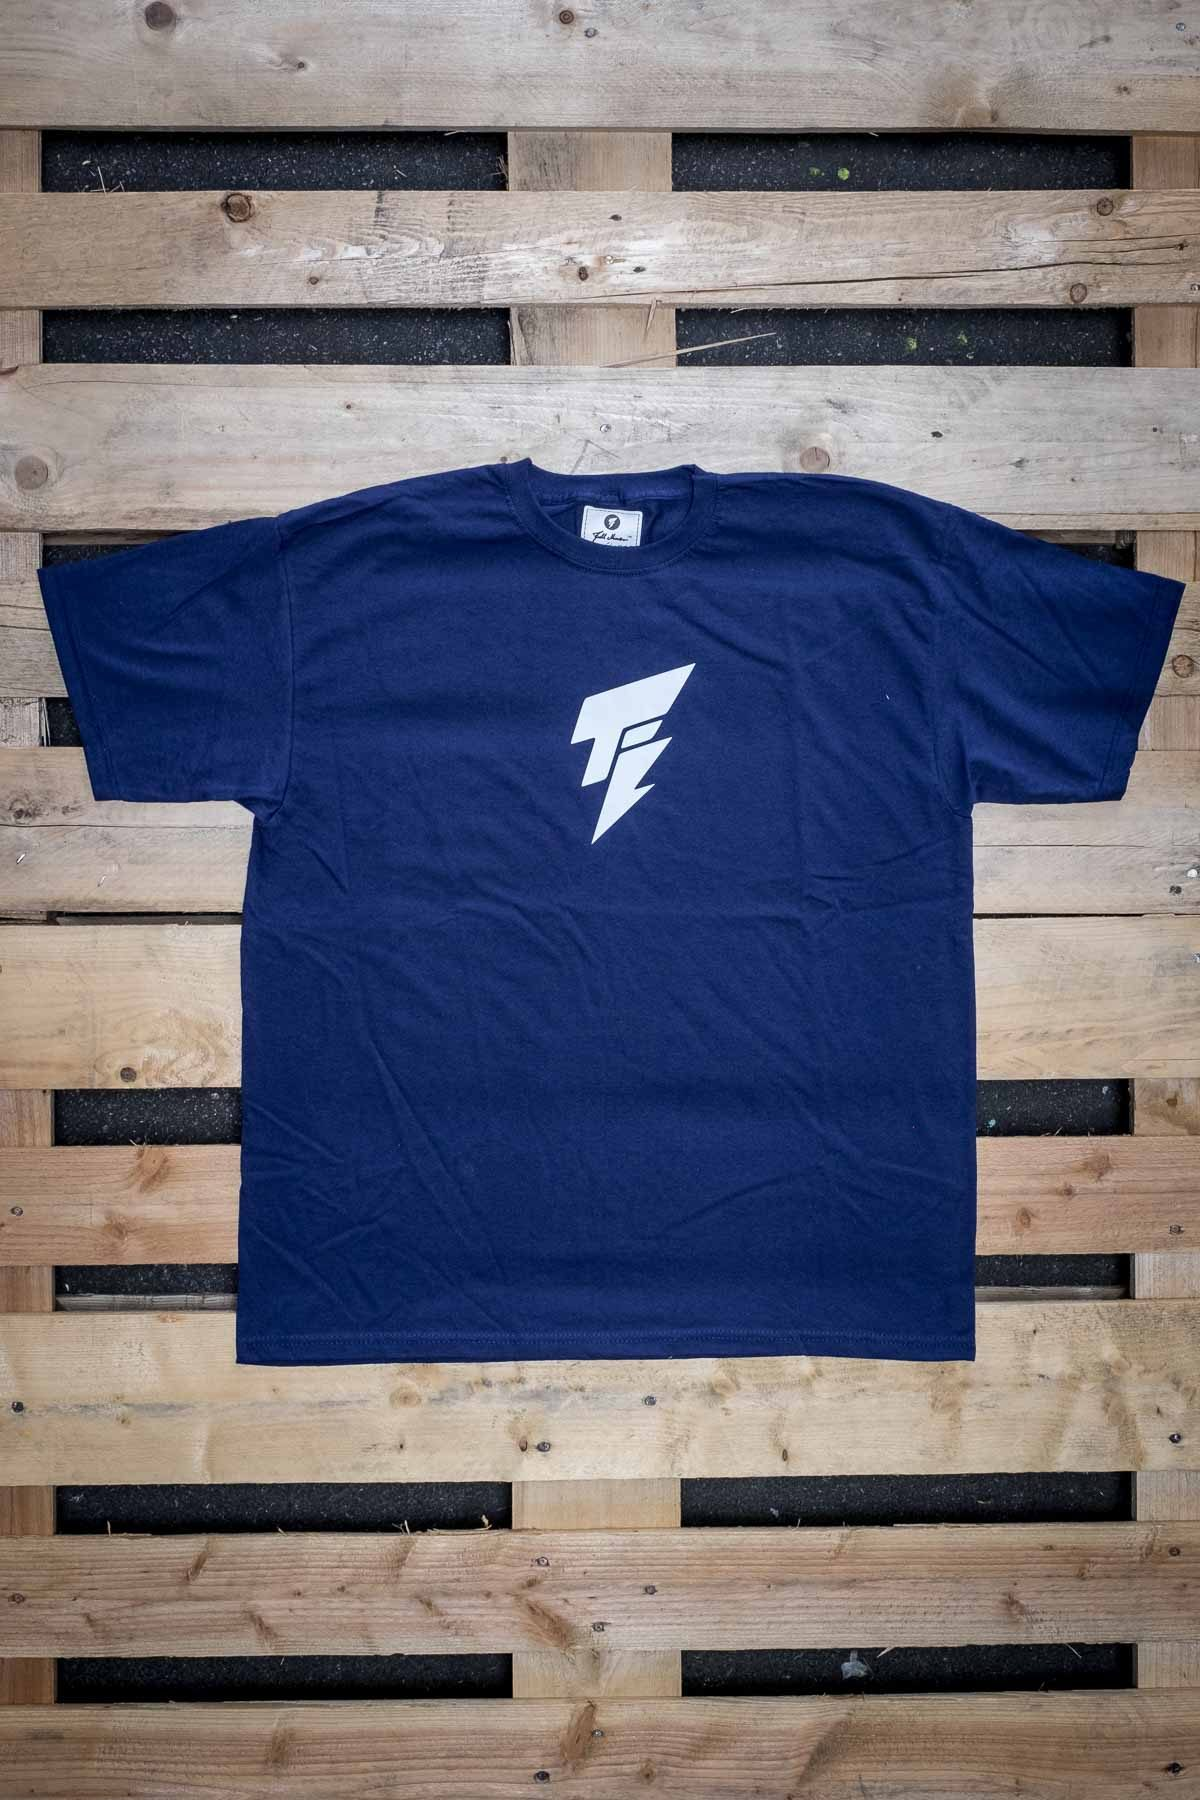 Full Mine Classic Tee Blue Front Typo Logo